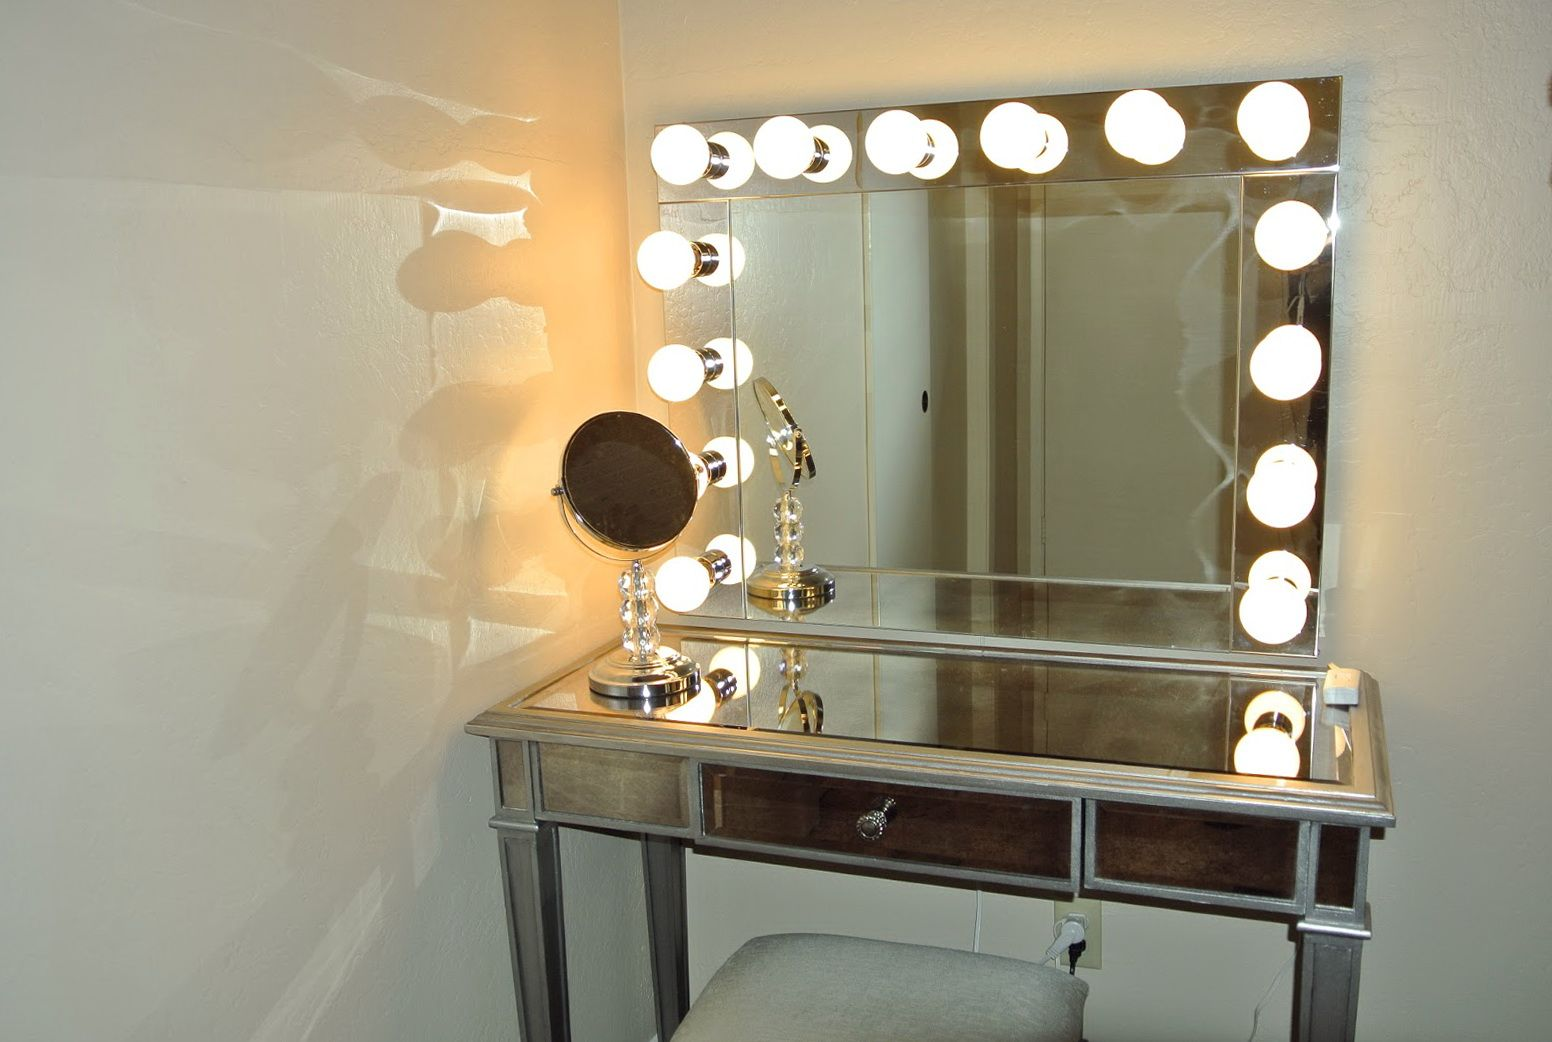 Diy vanity mirror with lights for bathroom and makeup station diy vanity mirror with lights for bathroom and makeup station mozeypictures